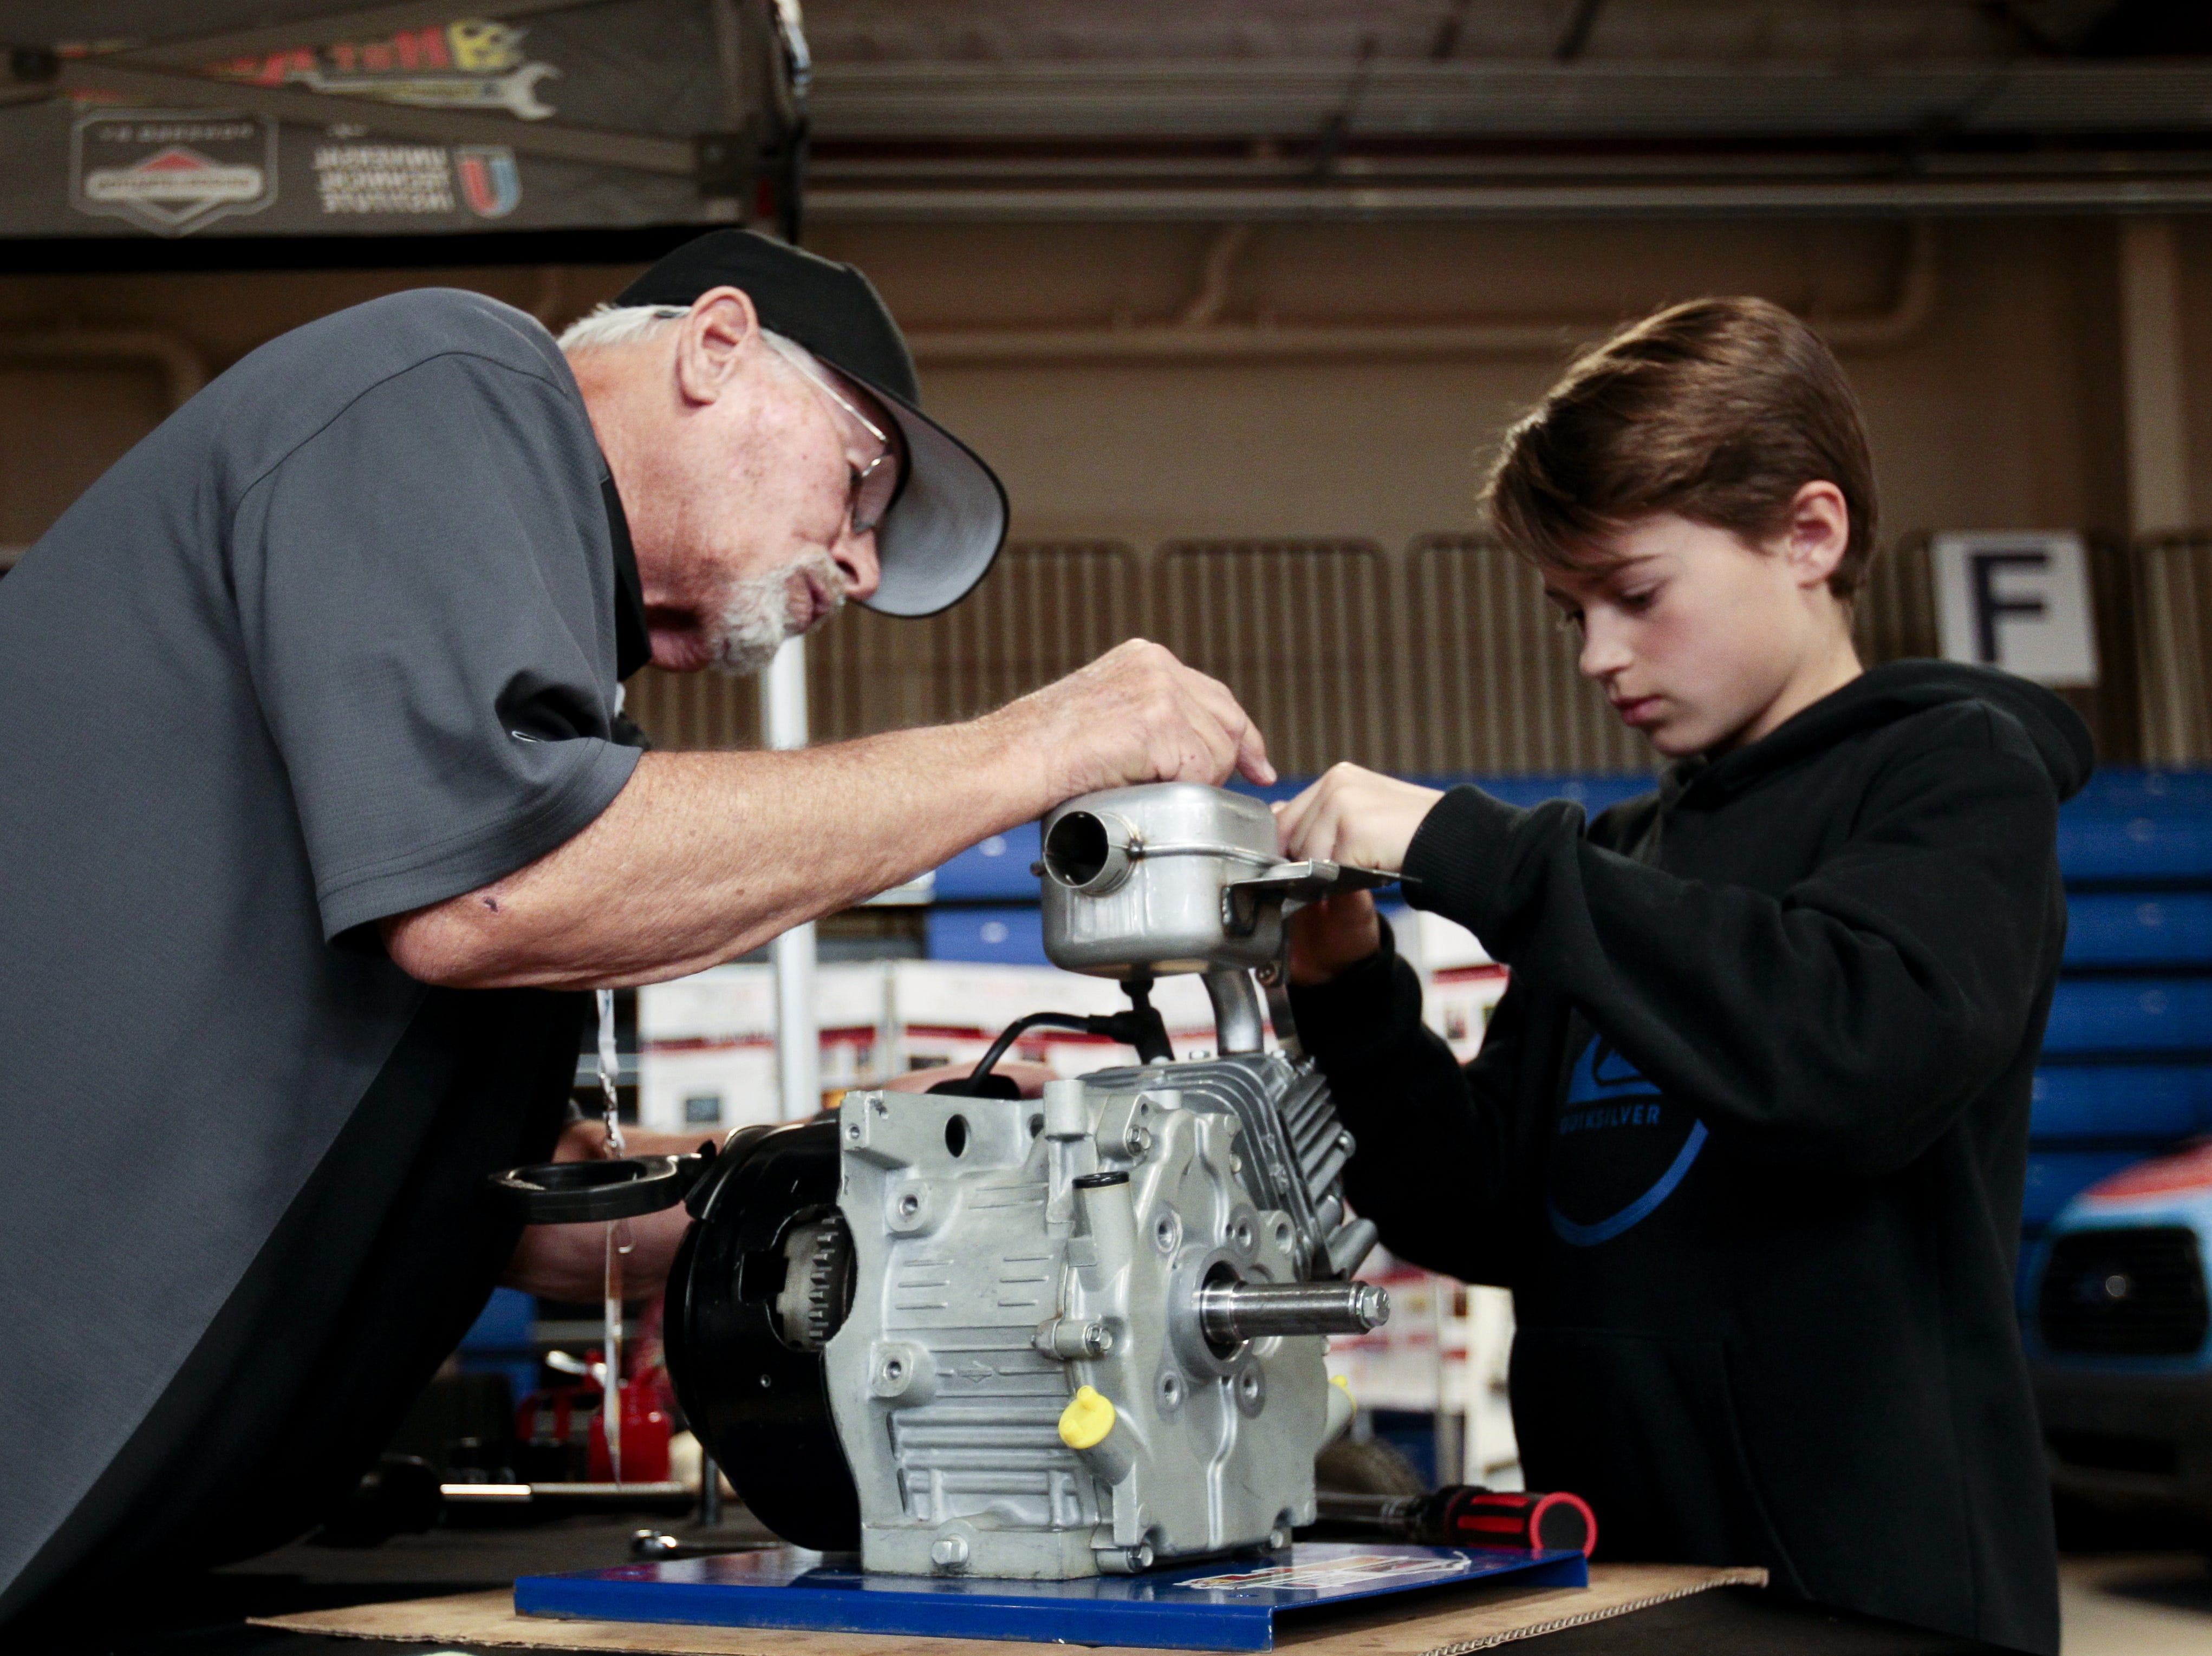 Jacob Fagan, 11, completes the engine challenge at a booth run by the Hot Dodders of Tomorrow in the kids area of the Barrett-Jackson Car Auction on Jan. 12. Rich Ralstin, left, helps explain the engine.